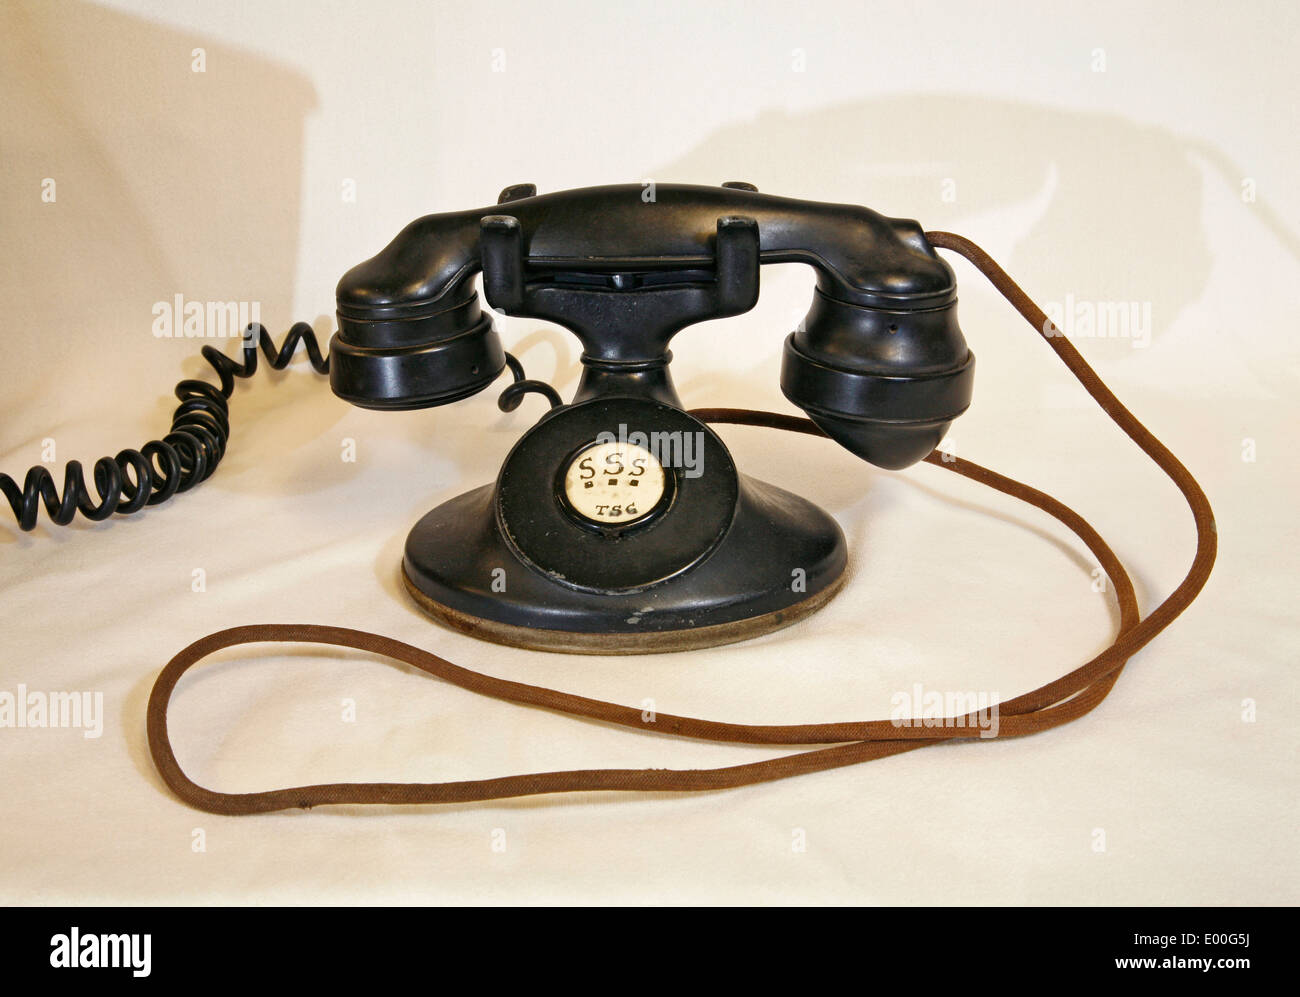 An American telephone, circa about 1930 - Stock Image